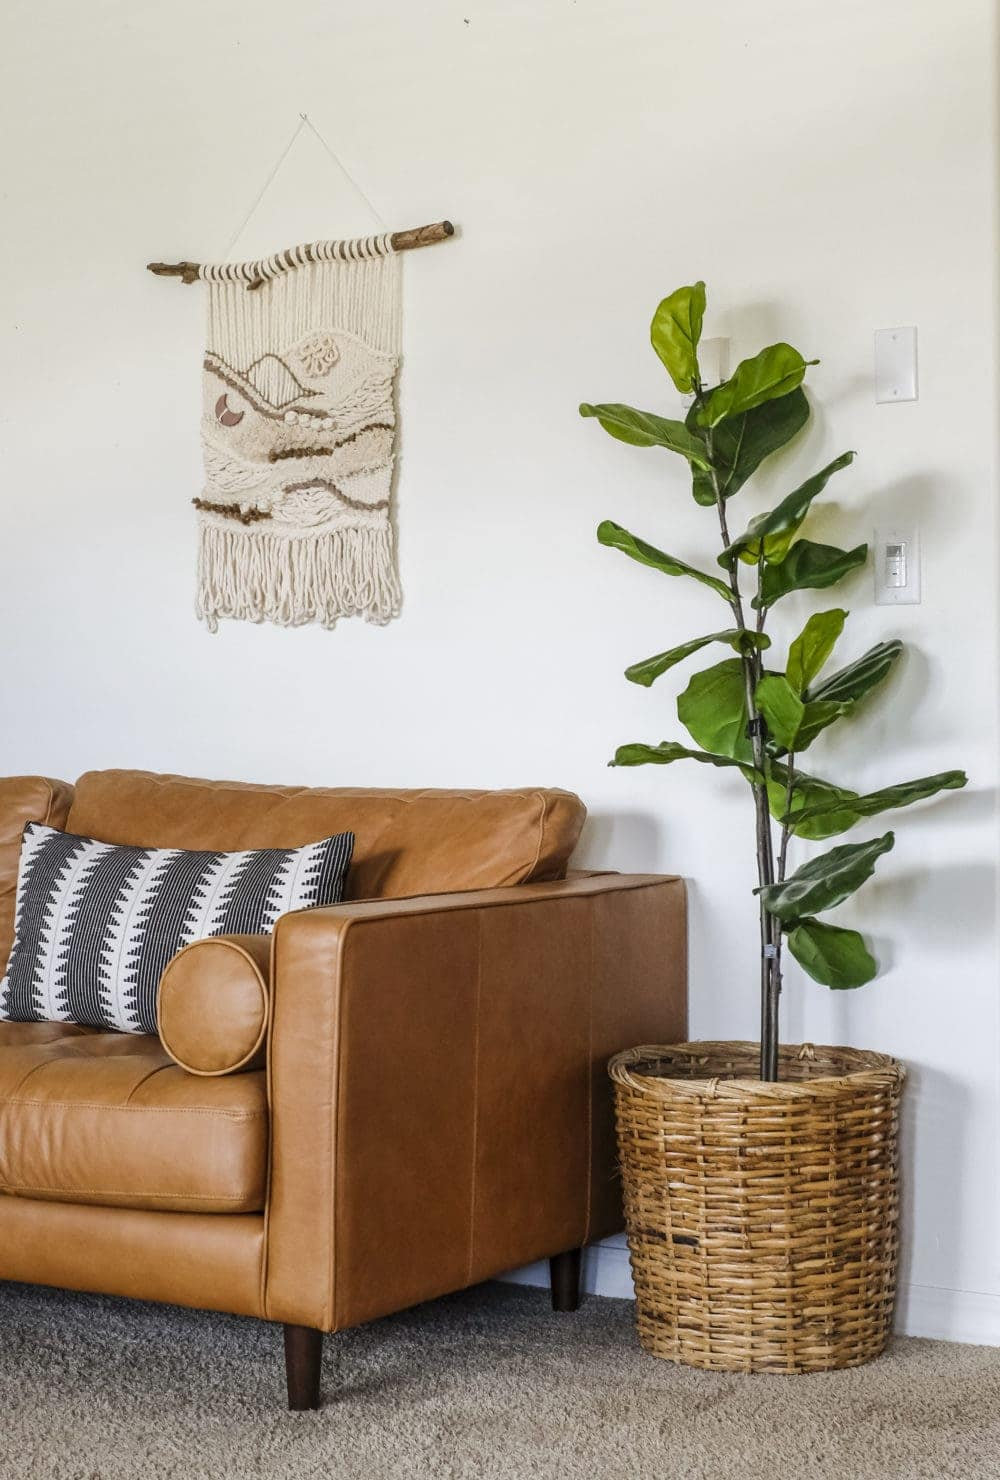 faux fiddle leaf fig tree in a woven basket sitting in a living room